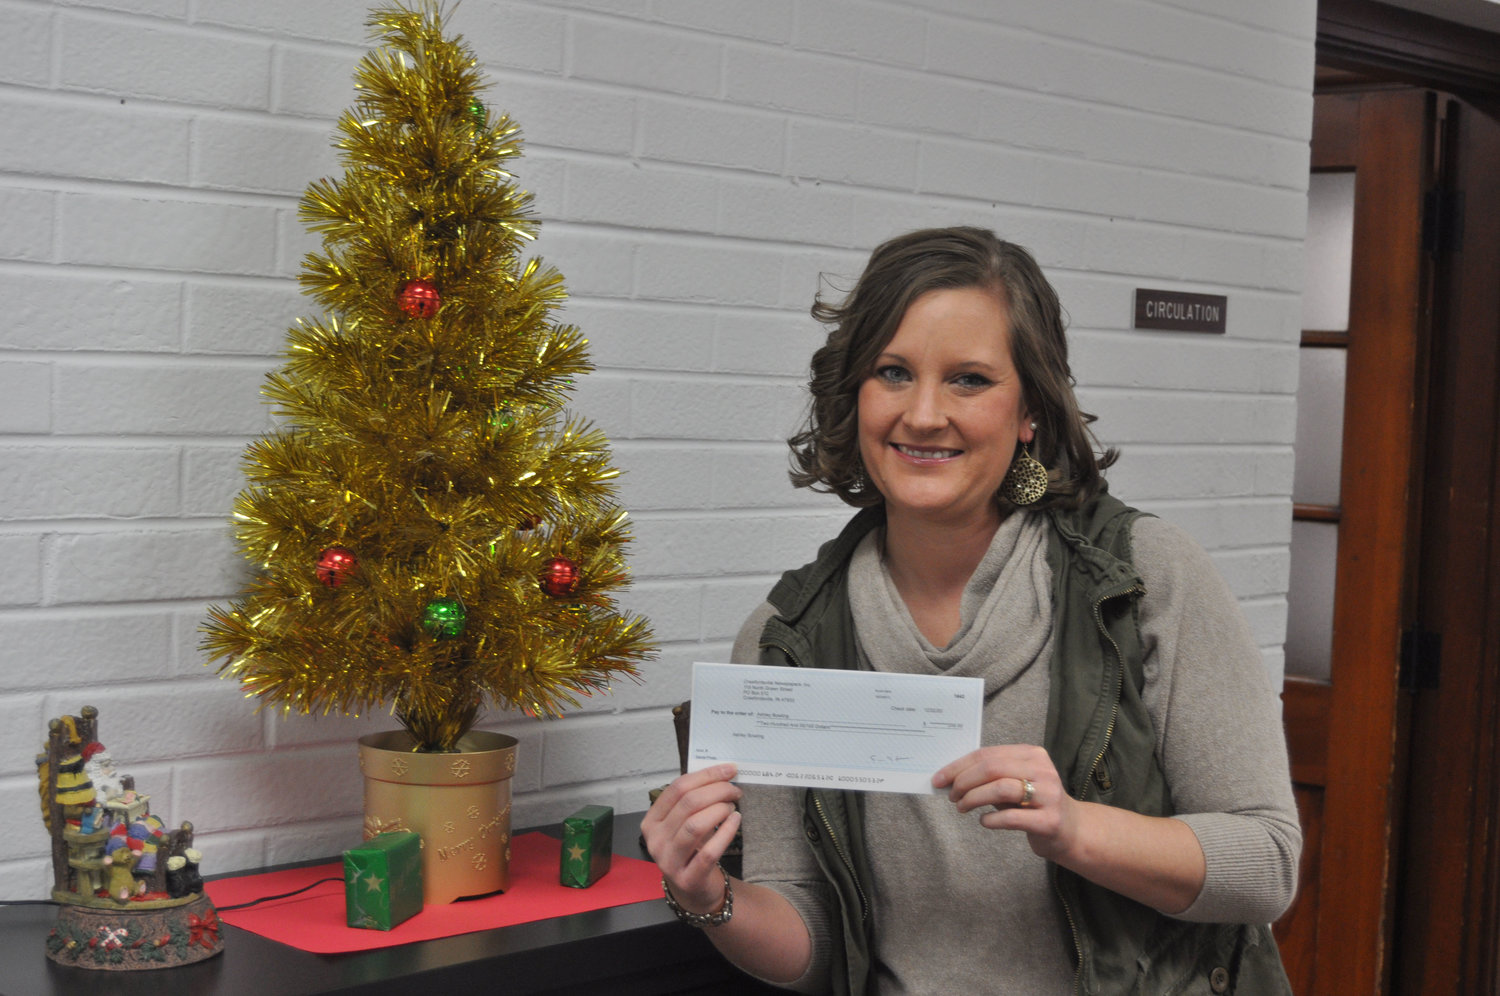 Ashley Bowling was the winner of the Journal Review's Santa photo contest, winning a $200 monetary prize.